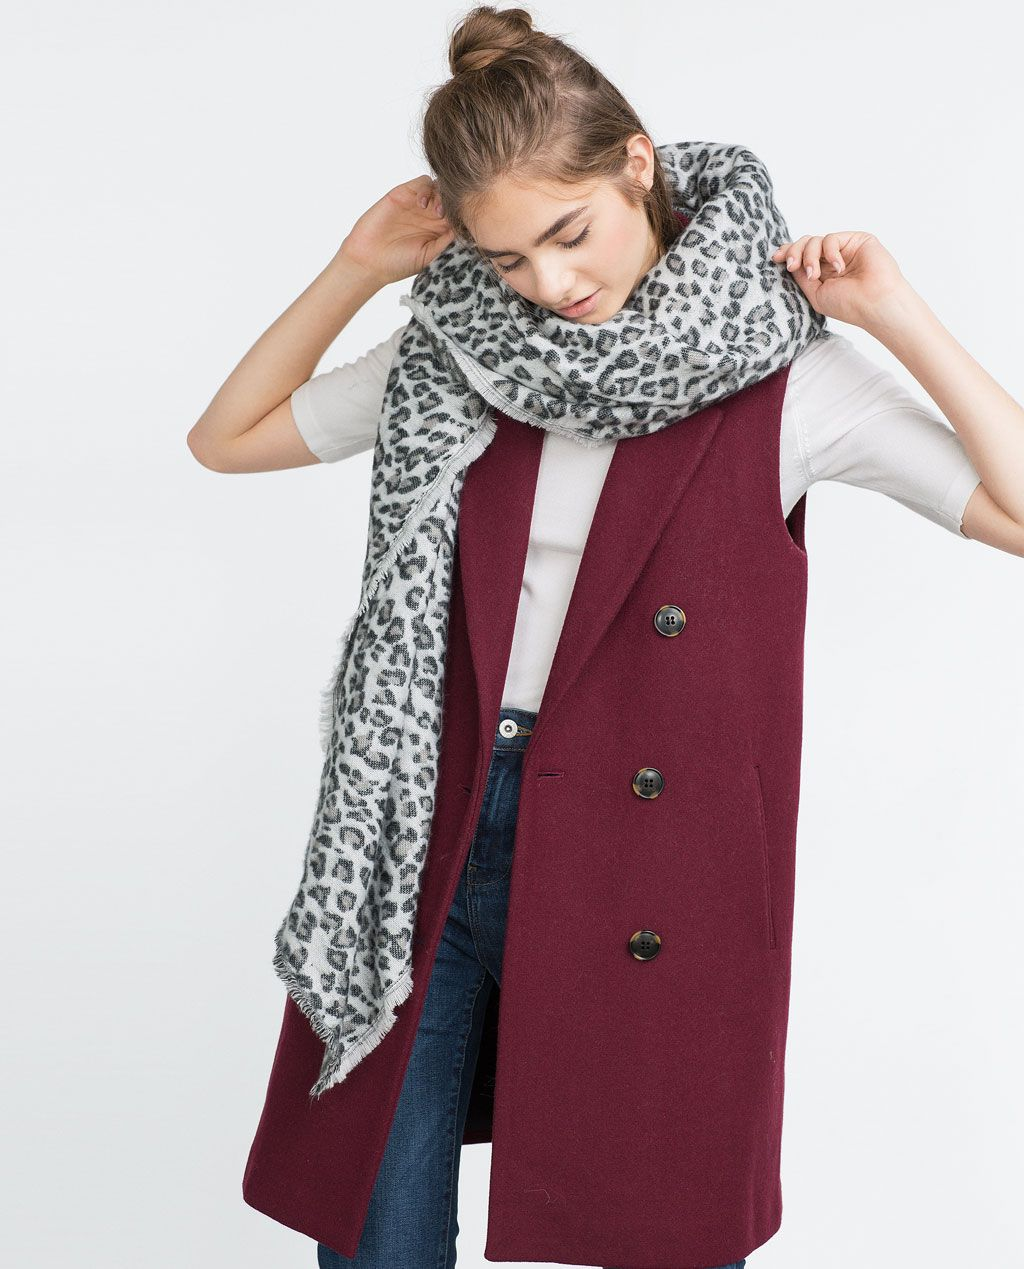 cd499d1825 15 Scarves We Want for Winter Now  Animal print scarf from Zara ...